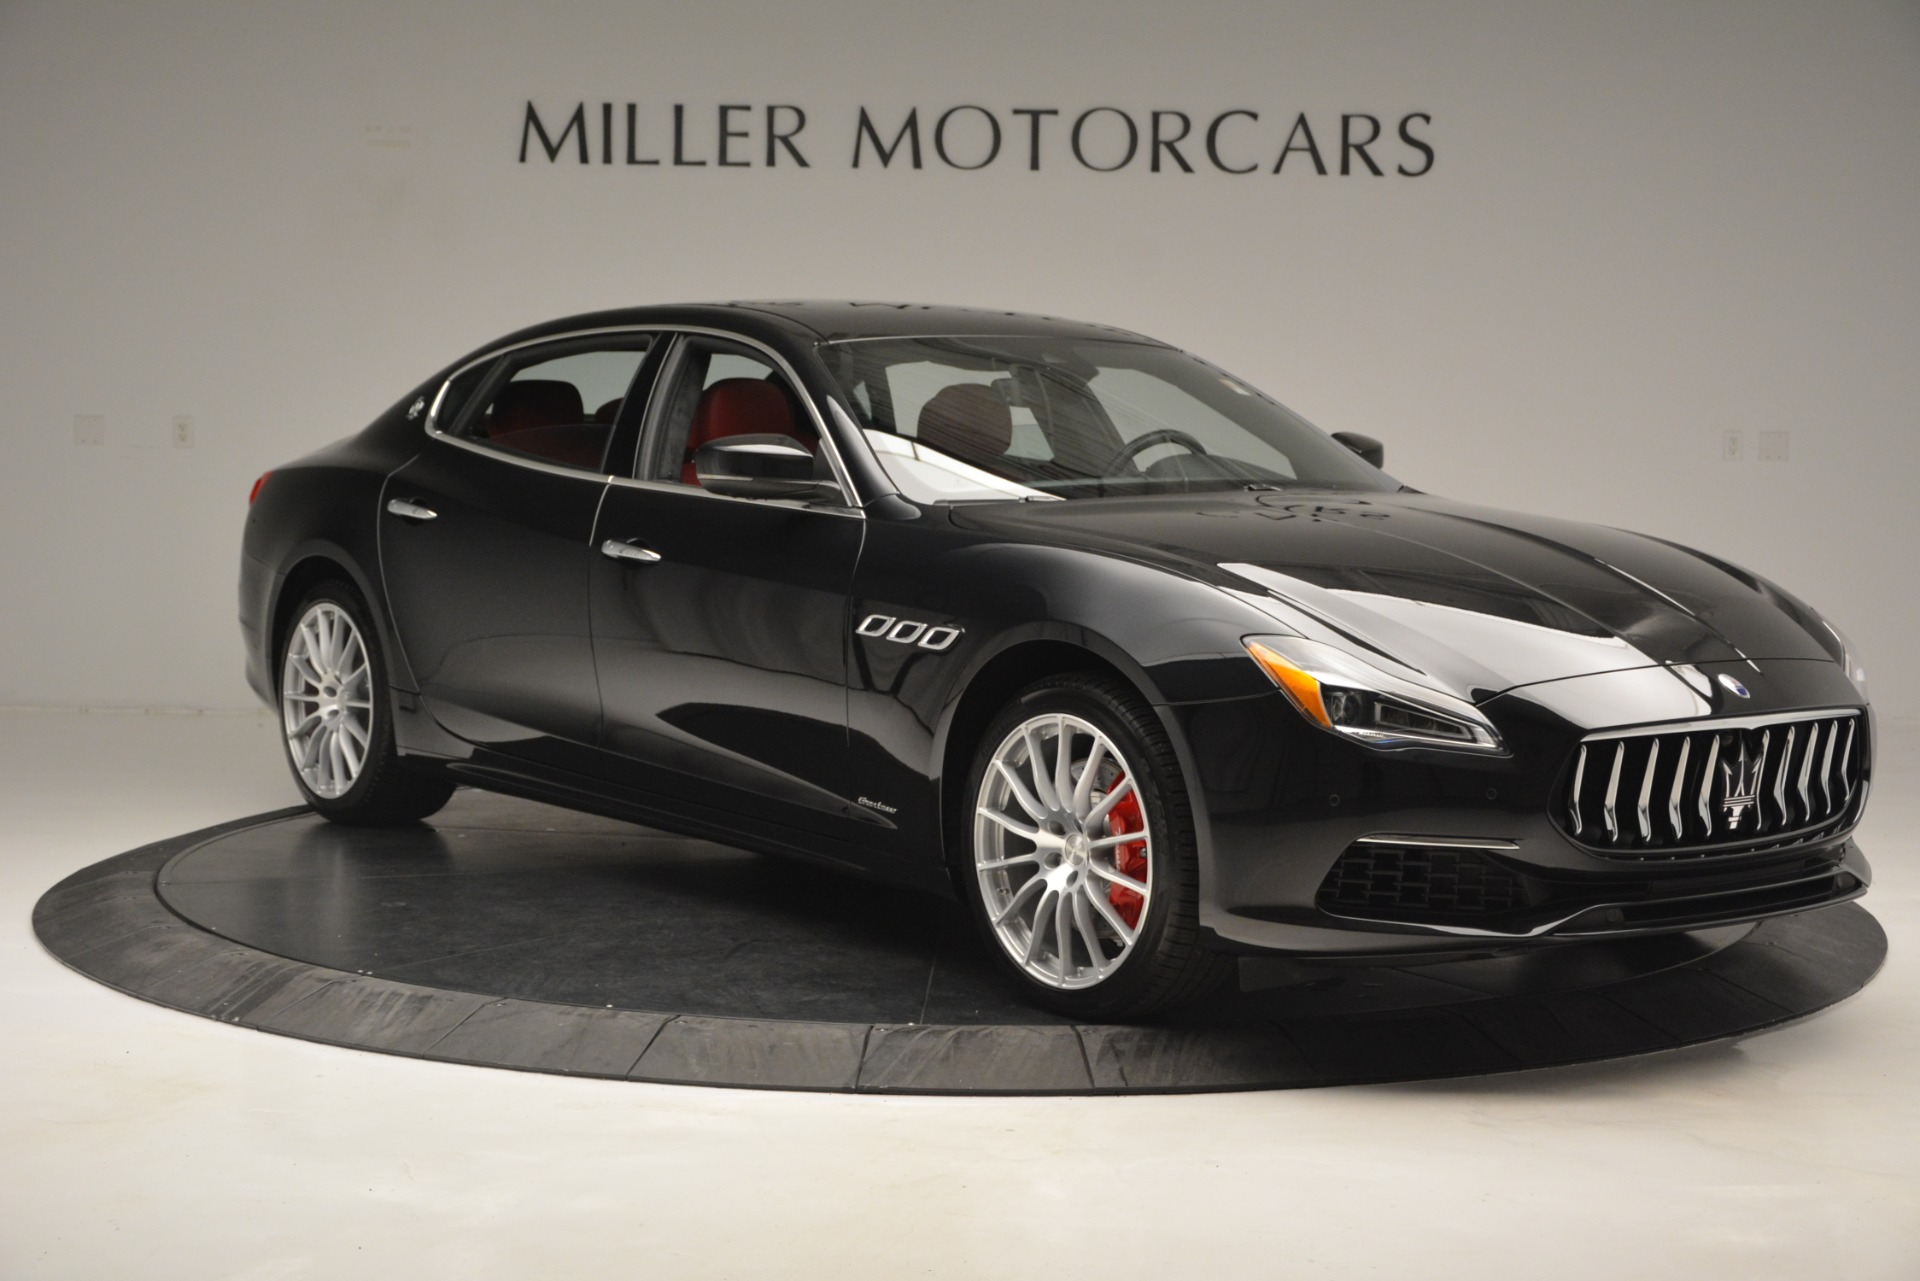 New 2019 Maserati Quattroporte S Q4 GranLusso For Sale In Greenwich, CT. Alfa Romeo of Greenwich, W629 2718_p11